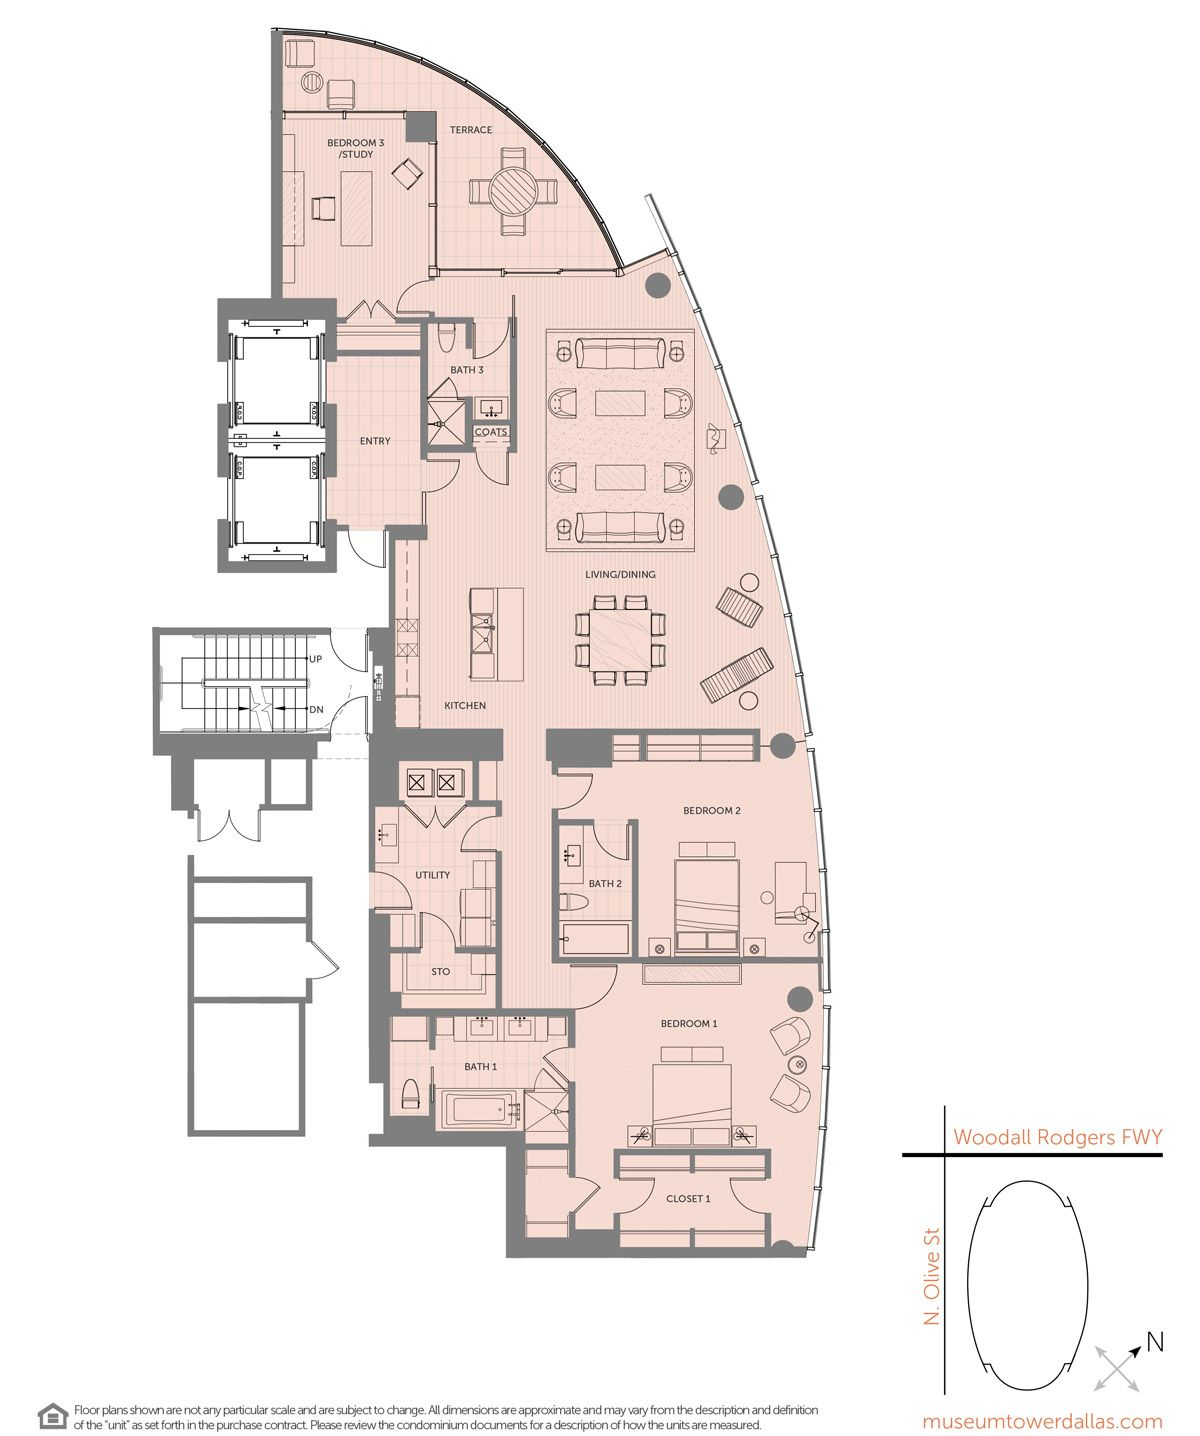 Museum Tower Offers A Variety Of Unique Downtown Dallas Condominium Floorplans Ranging From 1 800 Sq F Condo Floor Plans Floor Plans Architectural House Plans